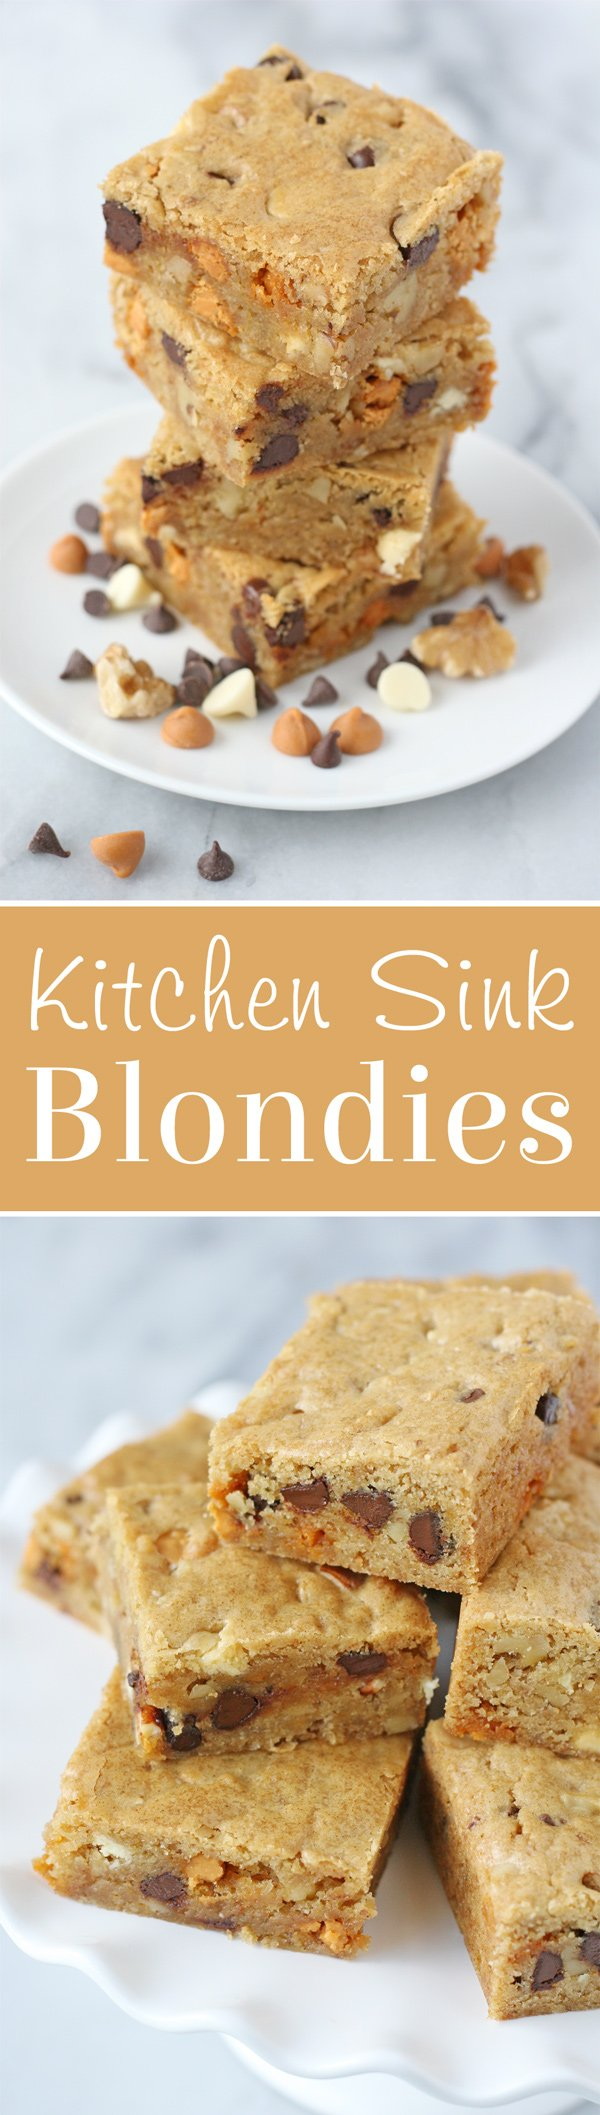 Simply the BEST Blondie recipe! Add in mix-ins of your choice!